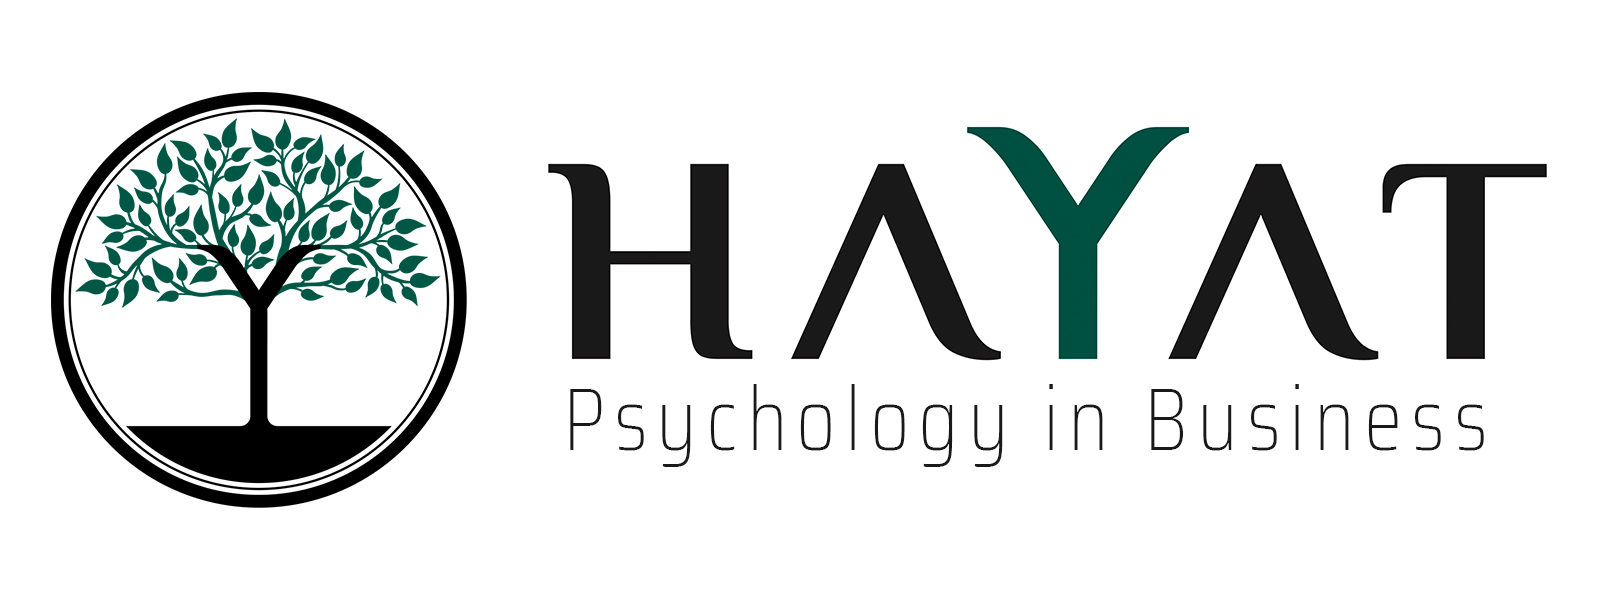 Hayat – Psychology in Business